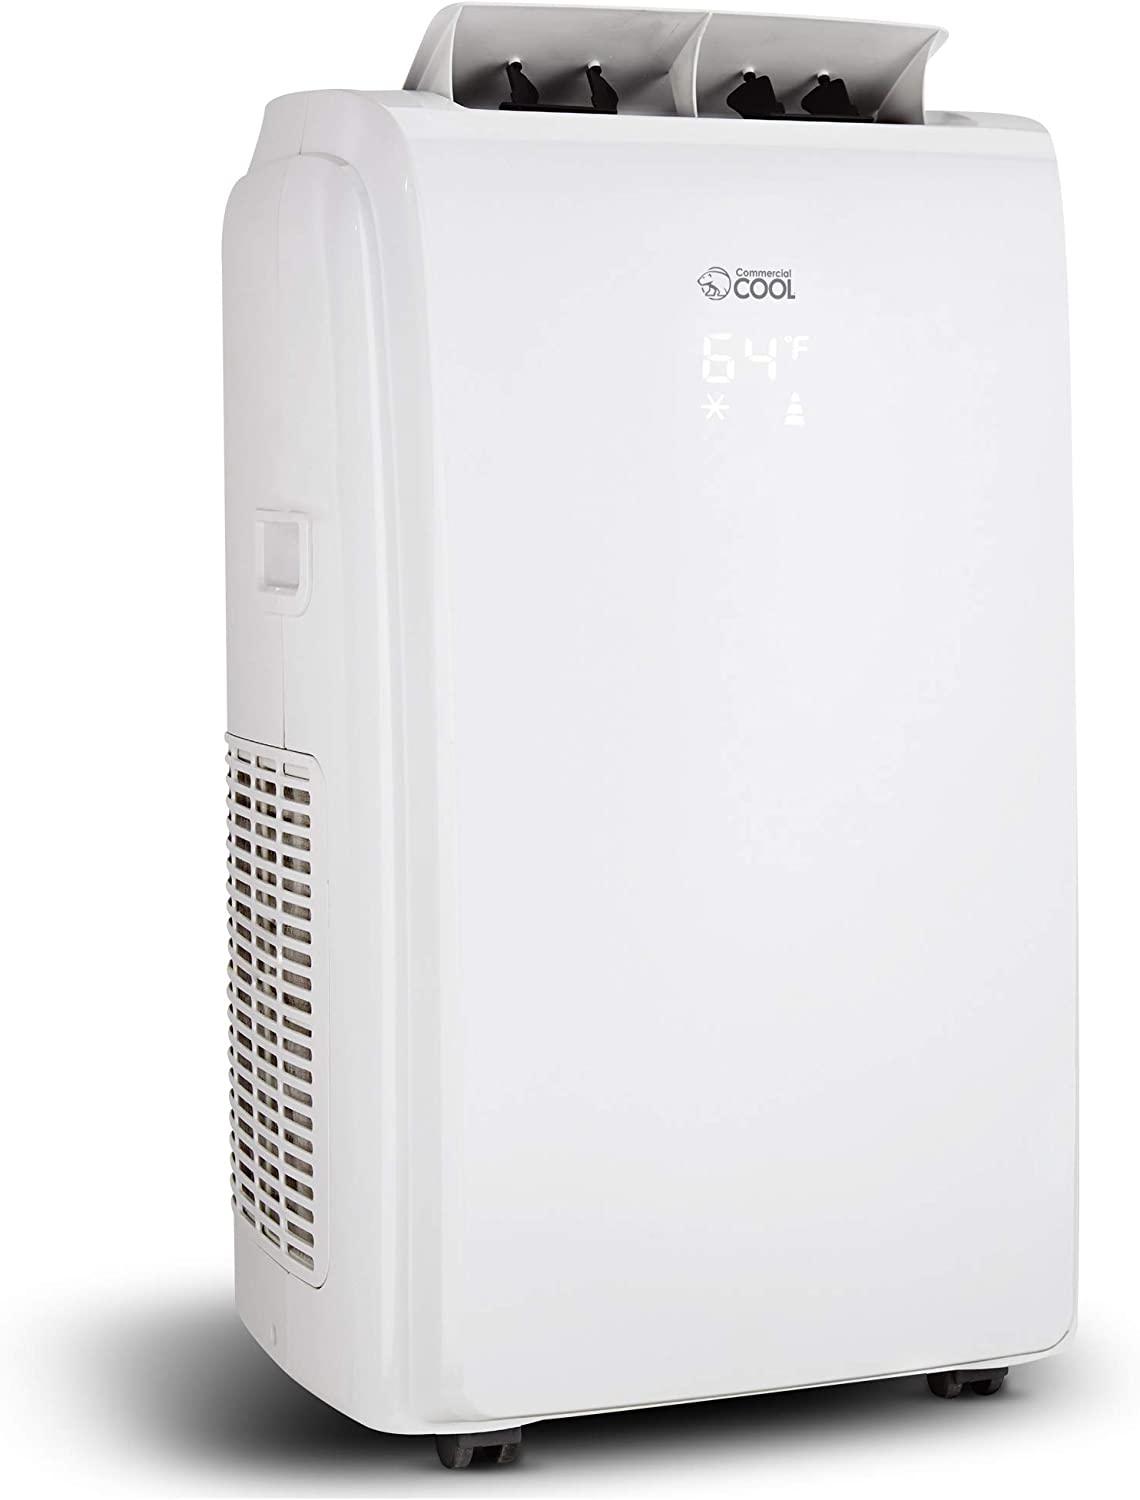 Commercial Cool CPT14HW6 Portable unit Air Conditioner, White